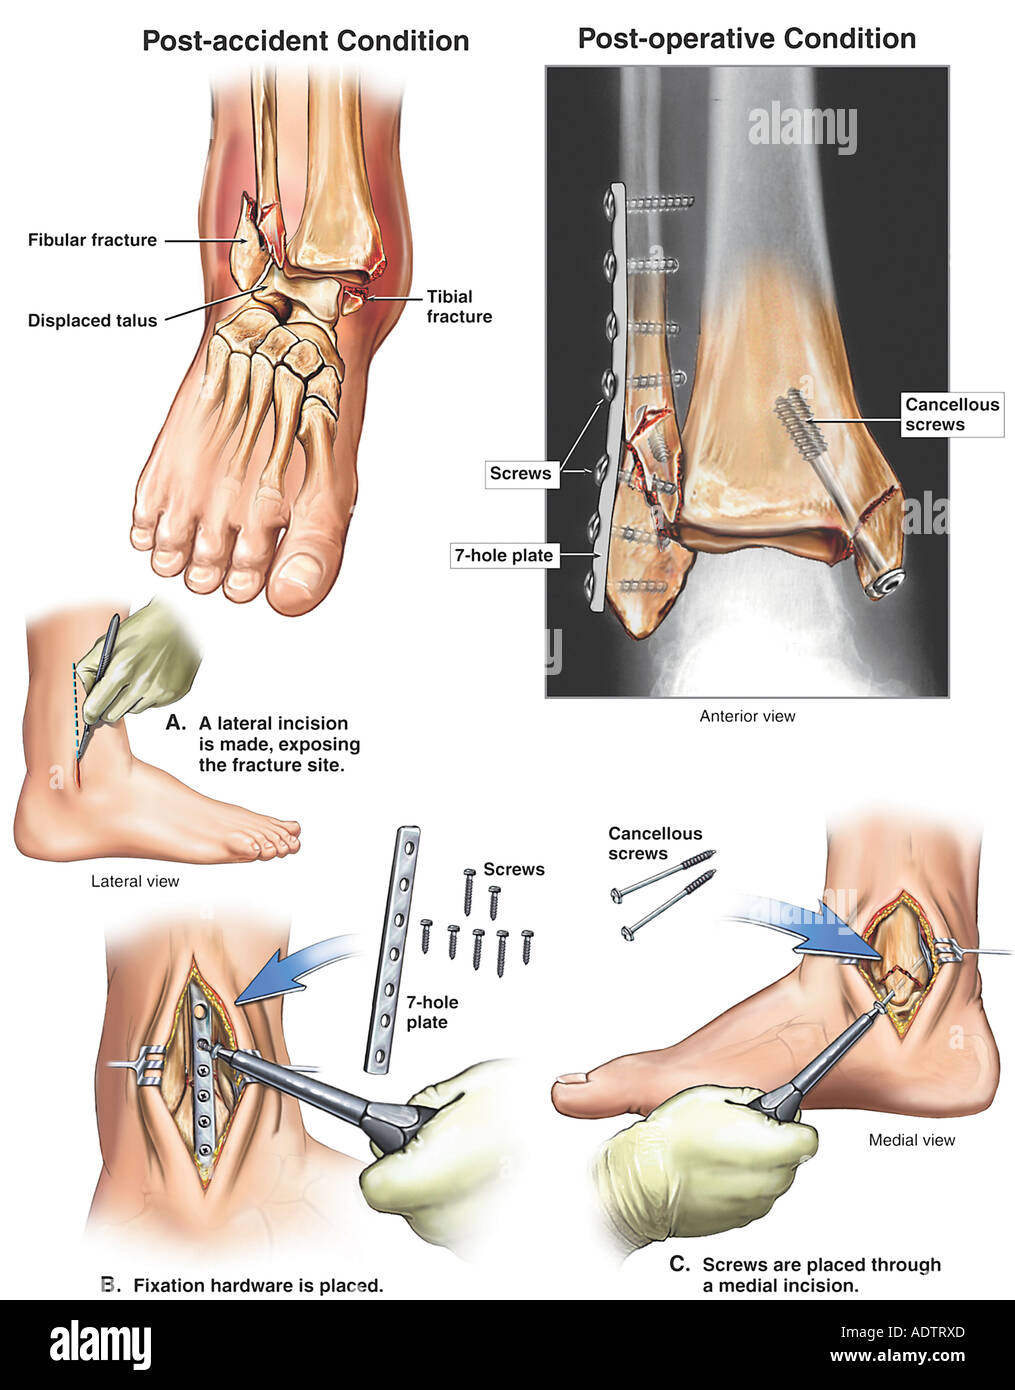 Broken Ankle - Displaced Trimalleolar Fractures with Fixation Surgery - Stock Image